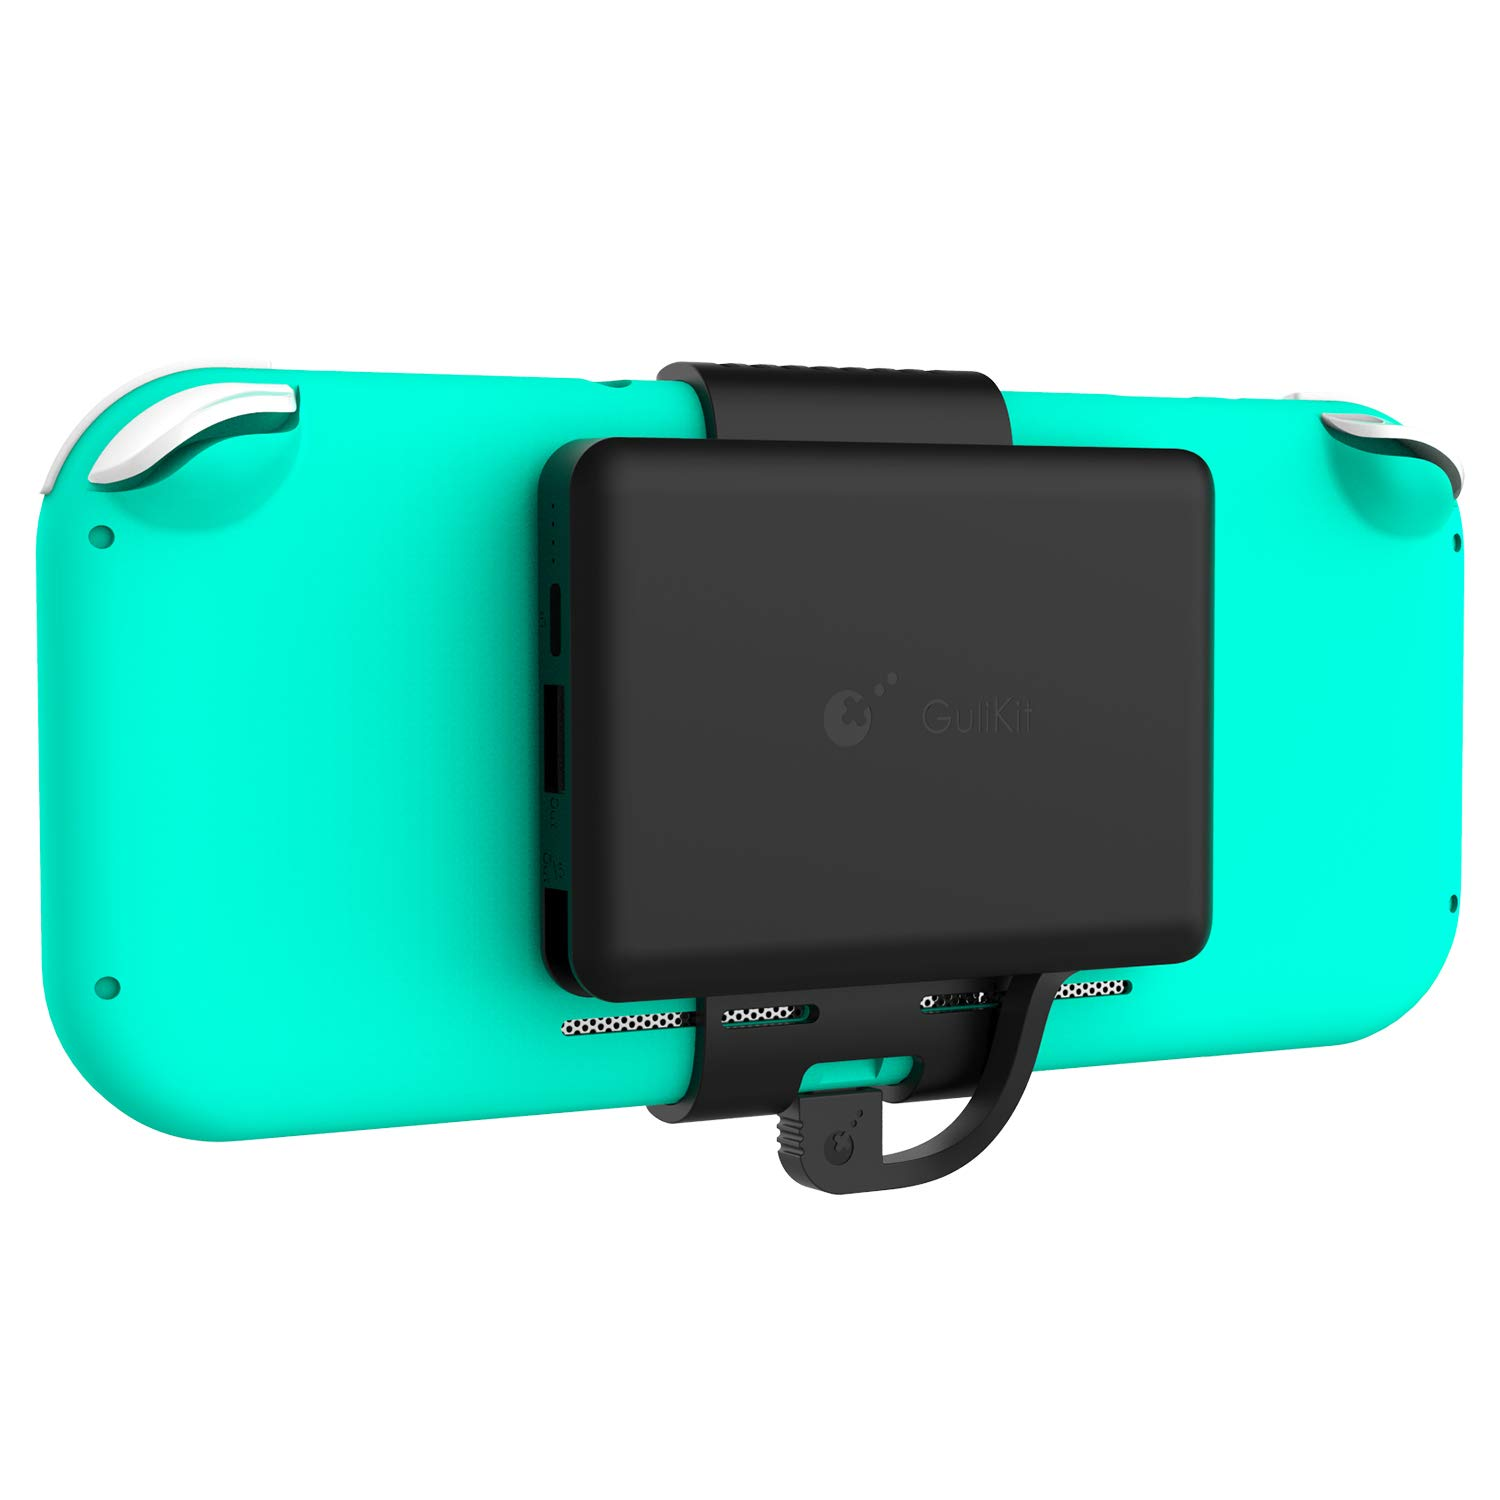 GuliKit Battery Pack for Nintendo Switch Lite, 5000mAh Portable Battery Case Power Bank with Back Mount Clip for Switch Lite, Smartphones and Tablets